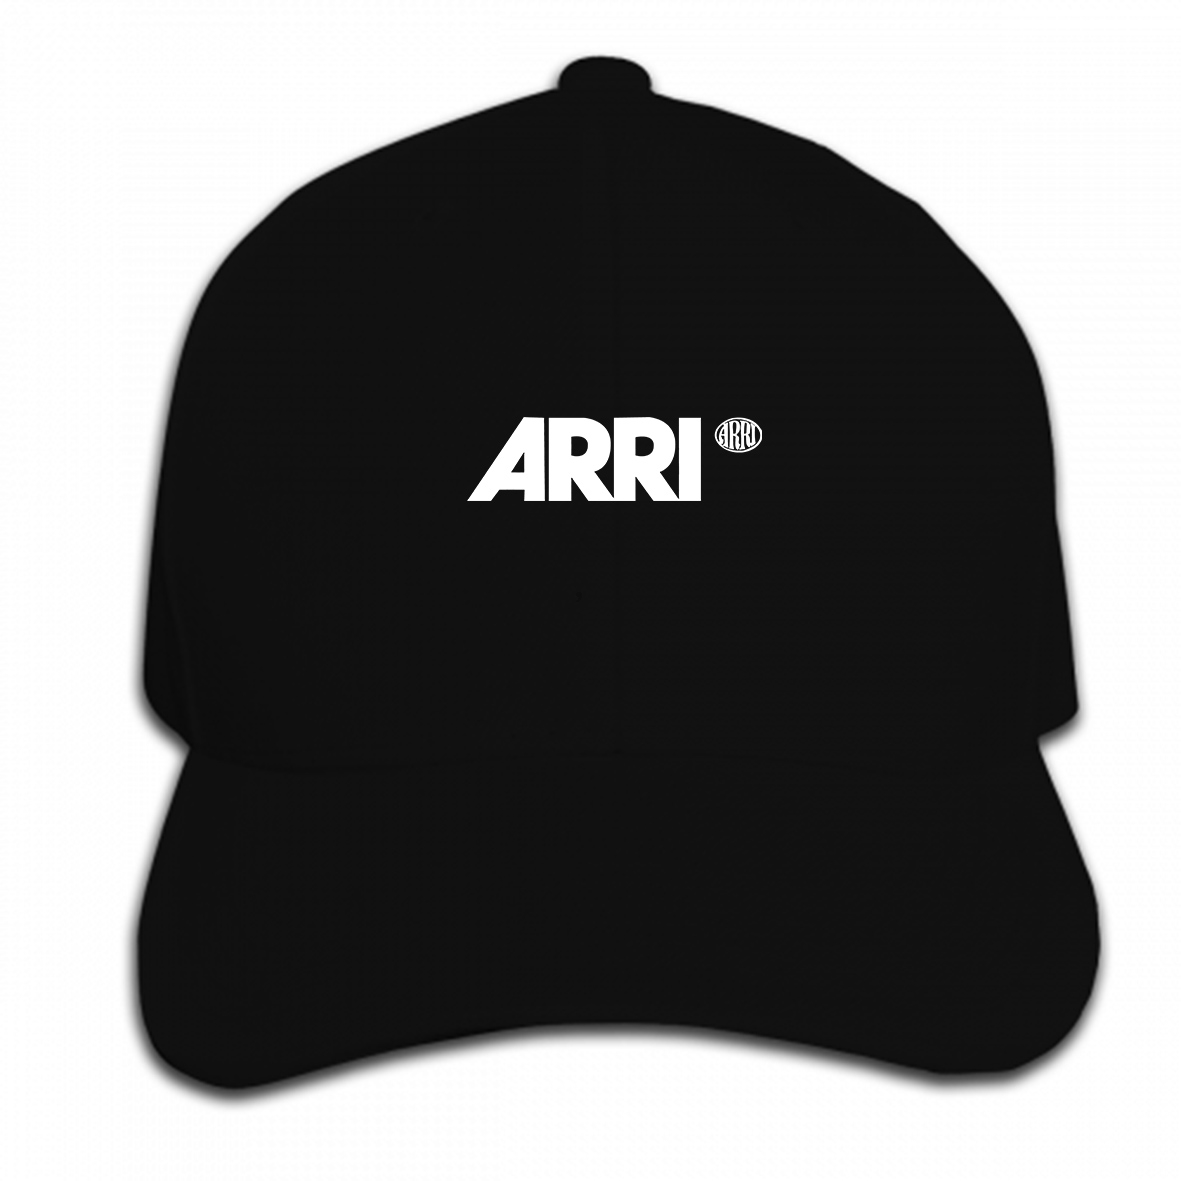 Print Custom Baseball Cap ARRI Motion Picture Logo Film Broadcast Camera Men Many Colors Hat Peaked Cap